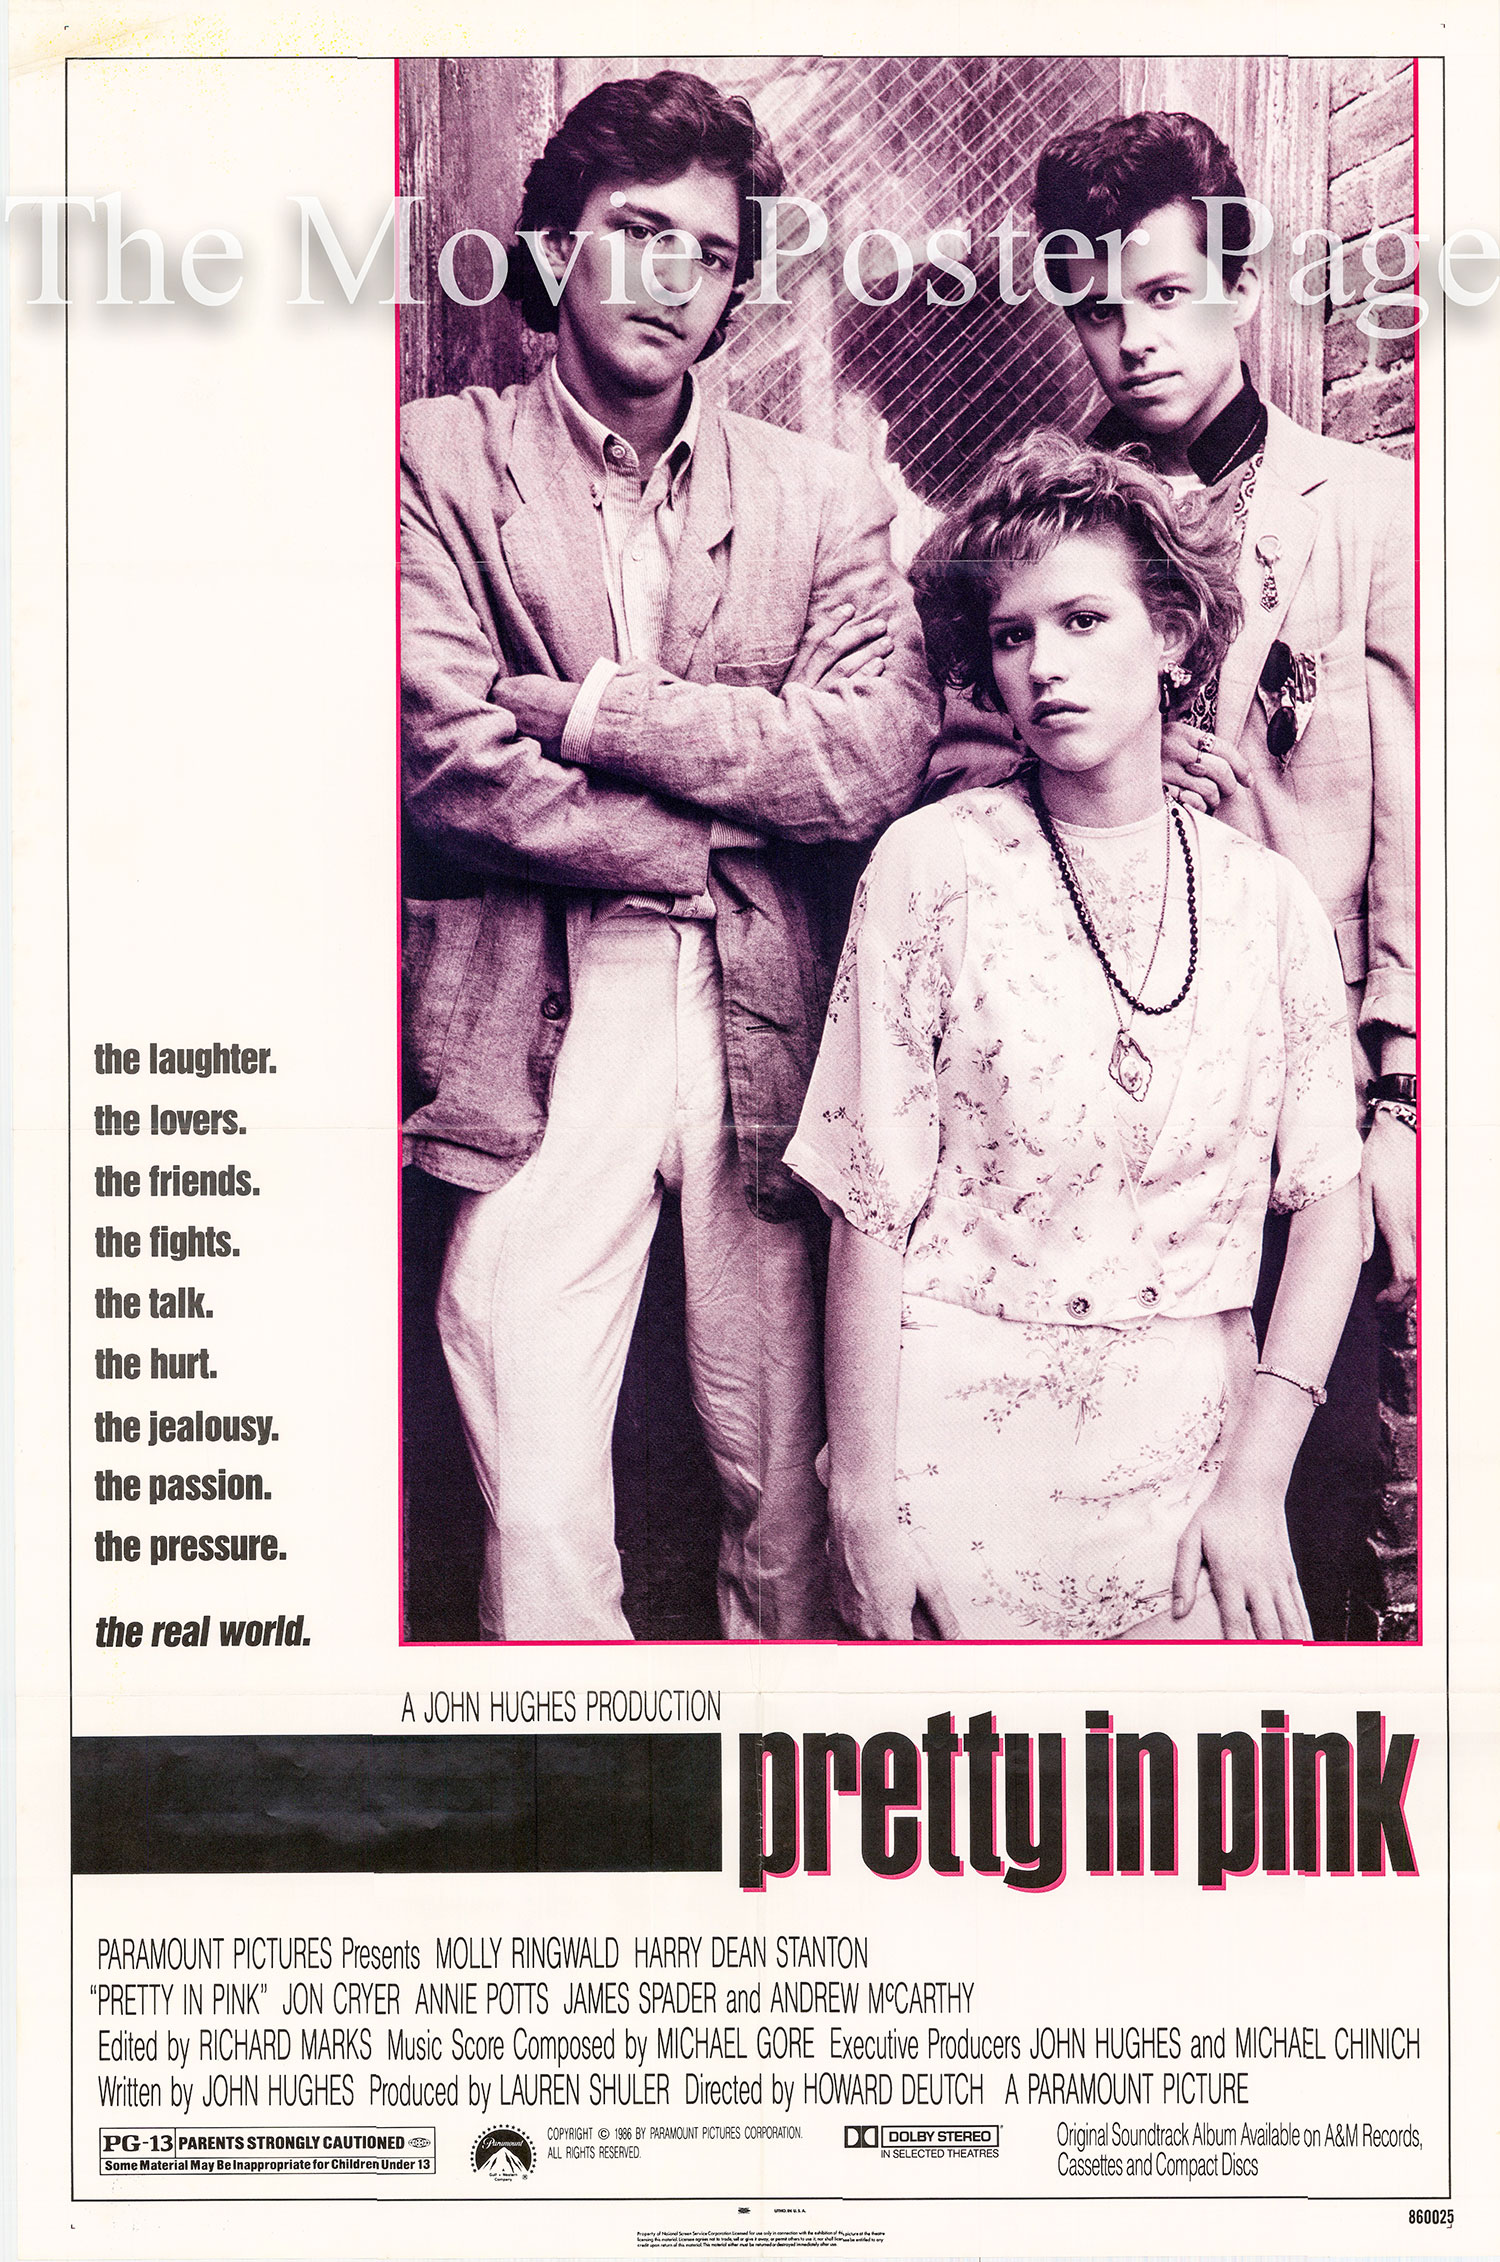 Pictured is a US one-sheet promotional poster for the 1986 John Deutch film Pretty in Pink starring Molly Ringwald.